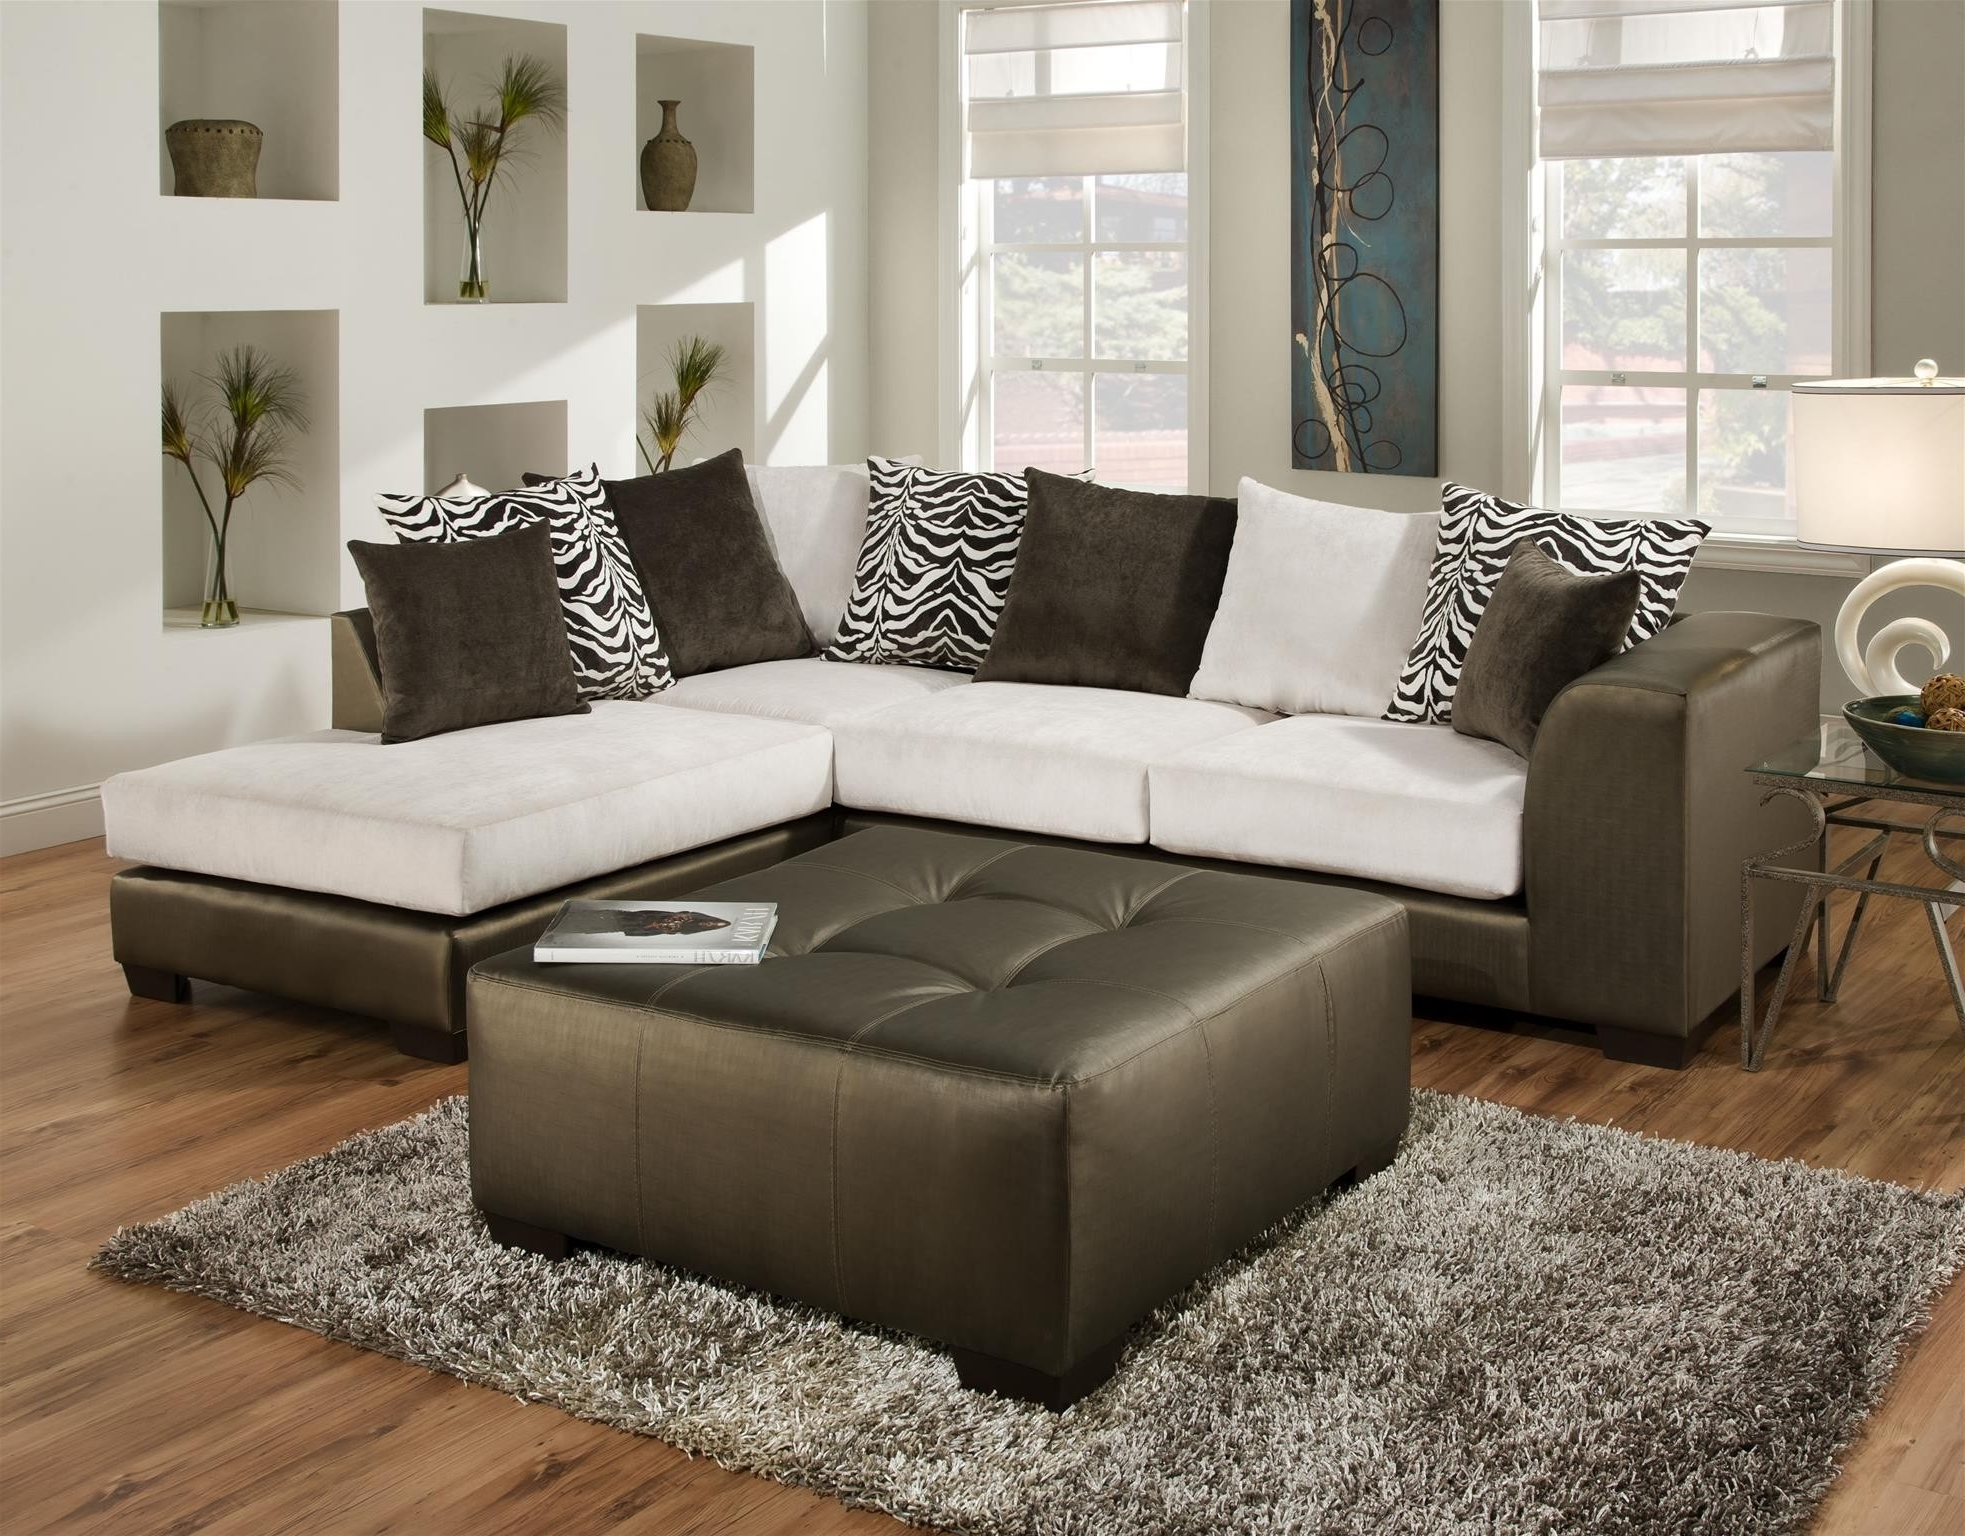 Trendy New Sectional Sofa Tampa – Buildsimplehome Within Tampa Sectional Sofas (View 15 of 15)